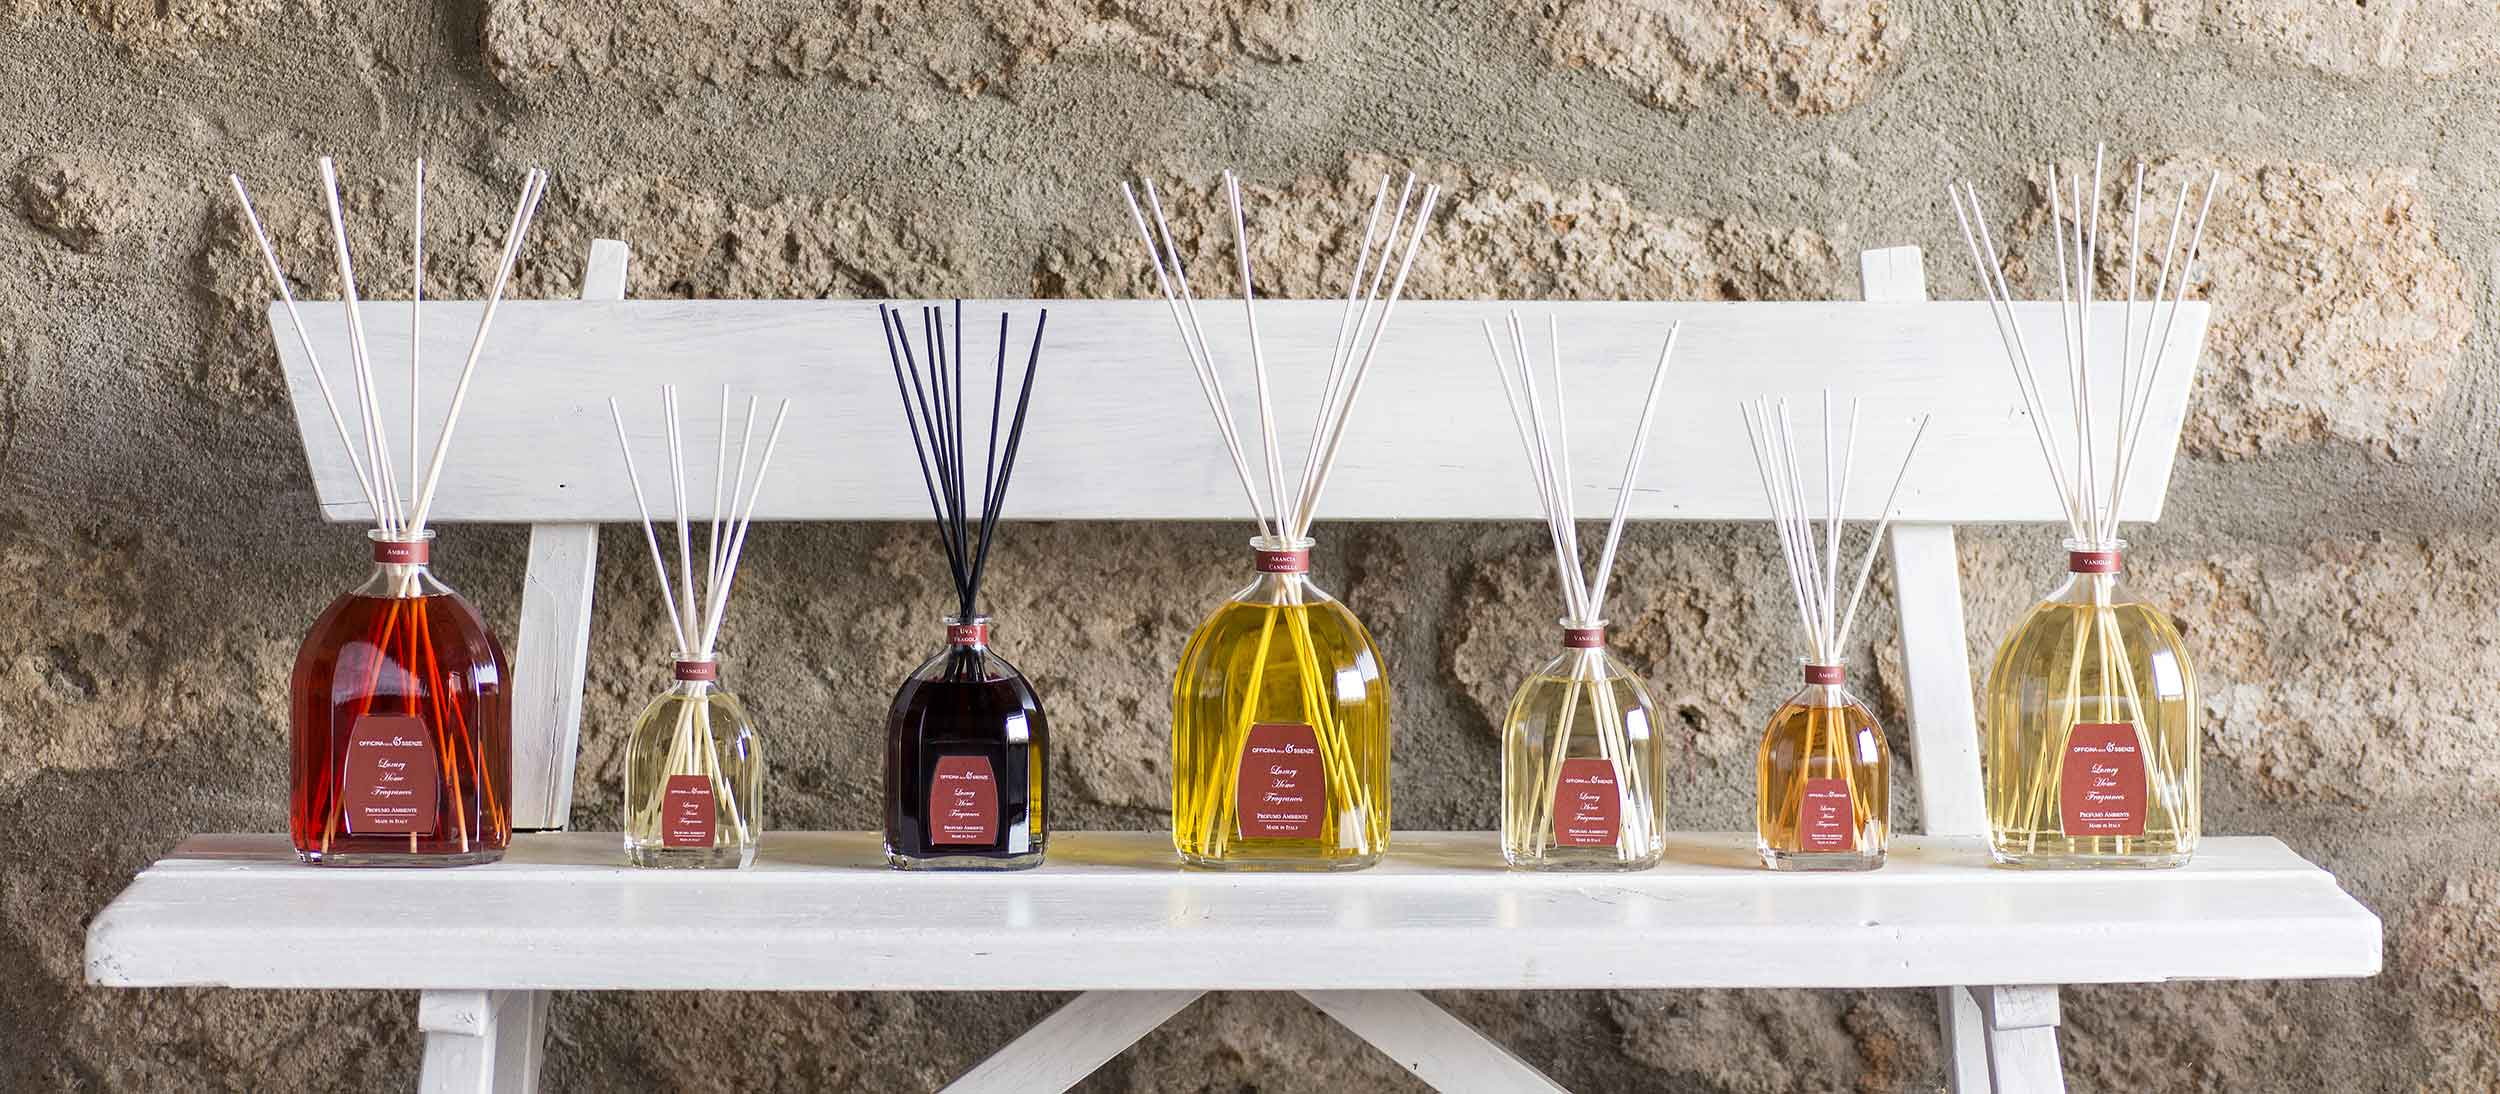 Home perfumes with rattan reeds